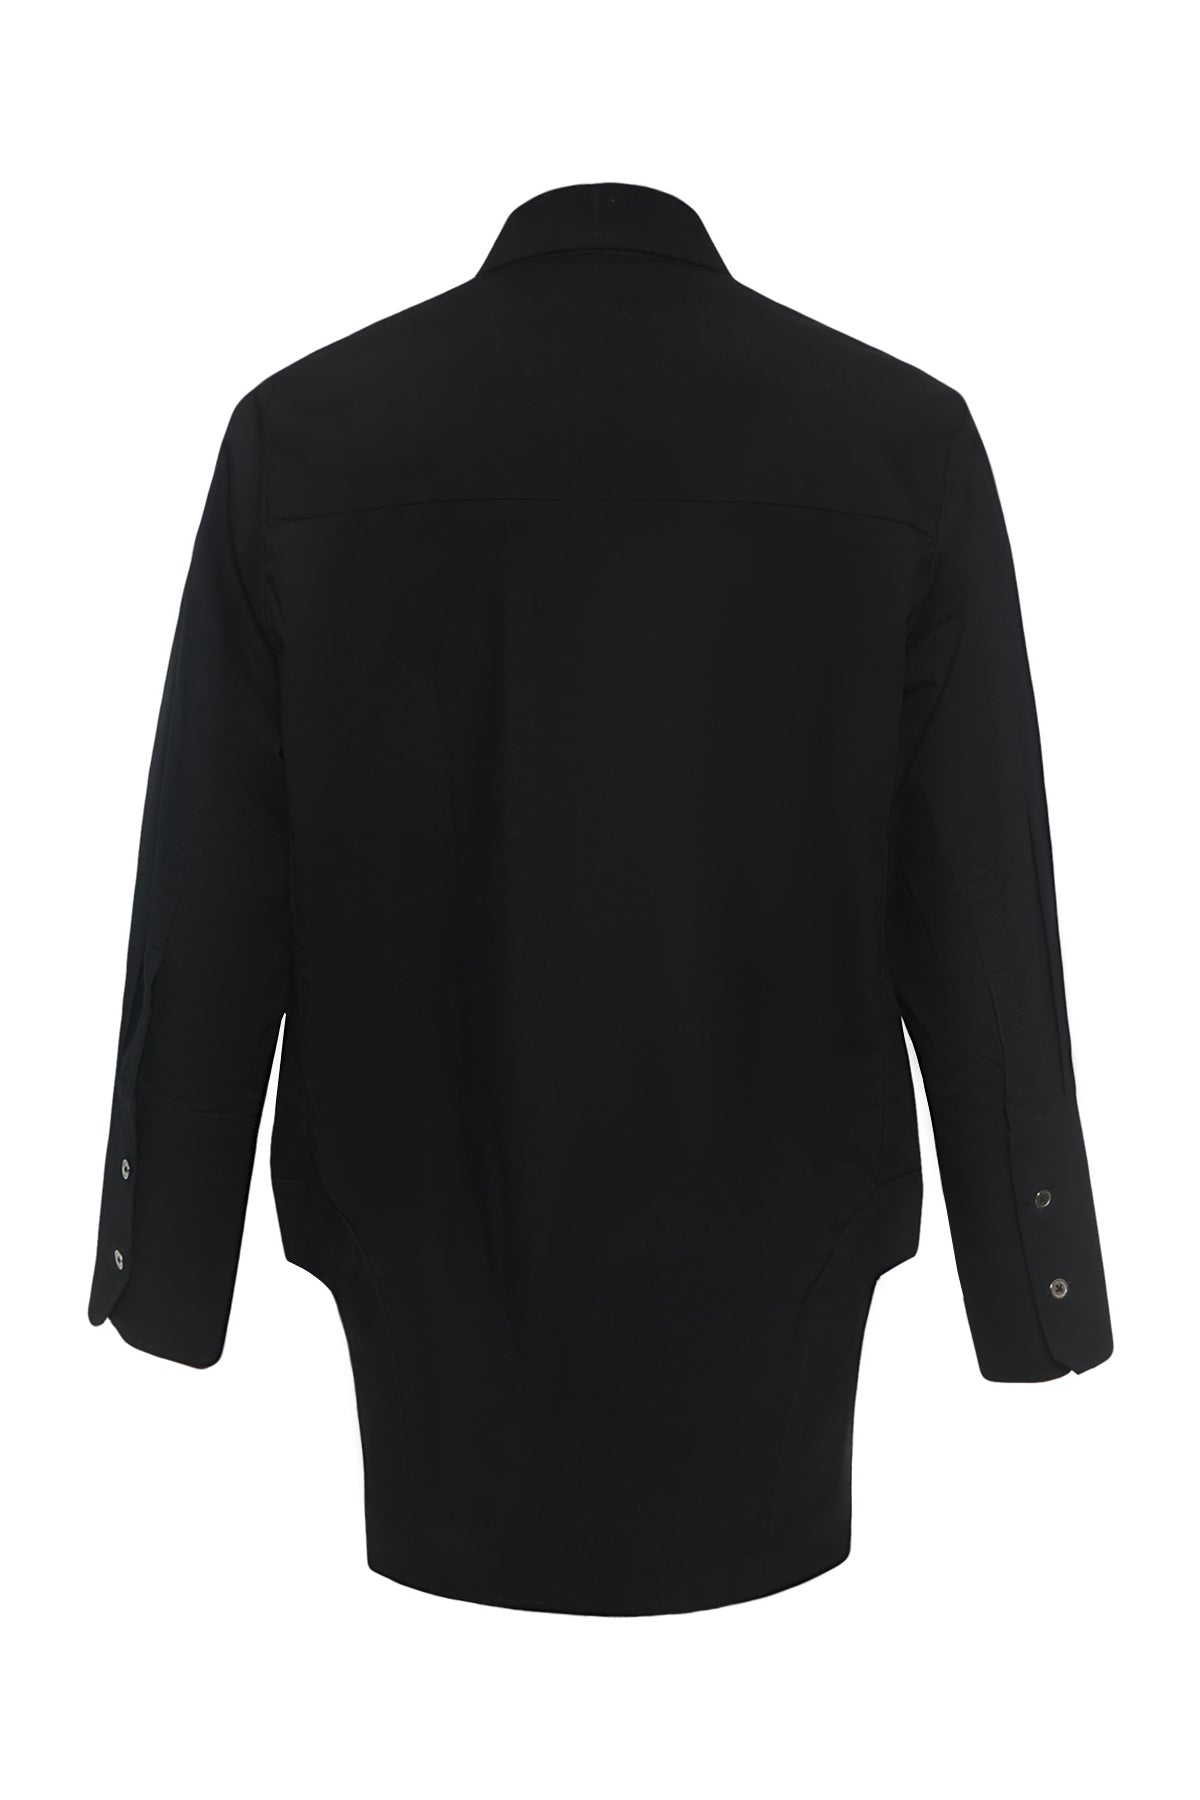 Double Pocket Curved Bottom Cotton Shirt in Black